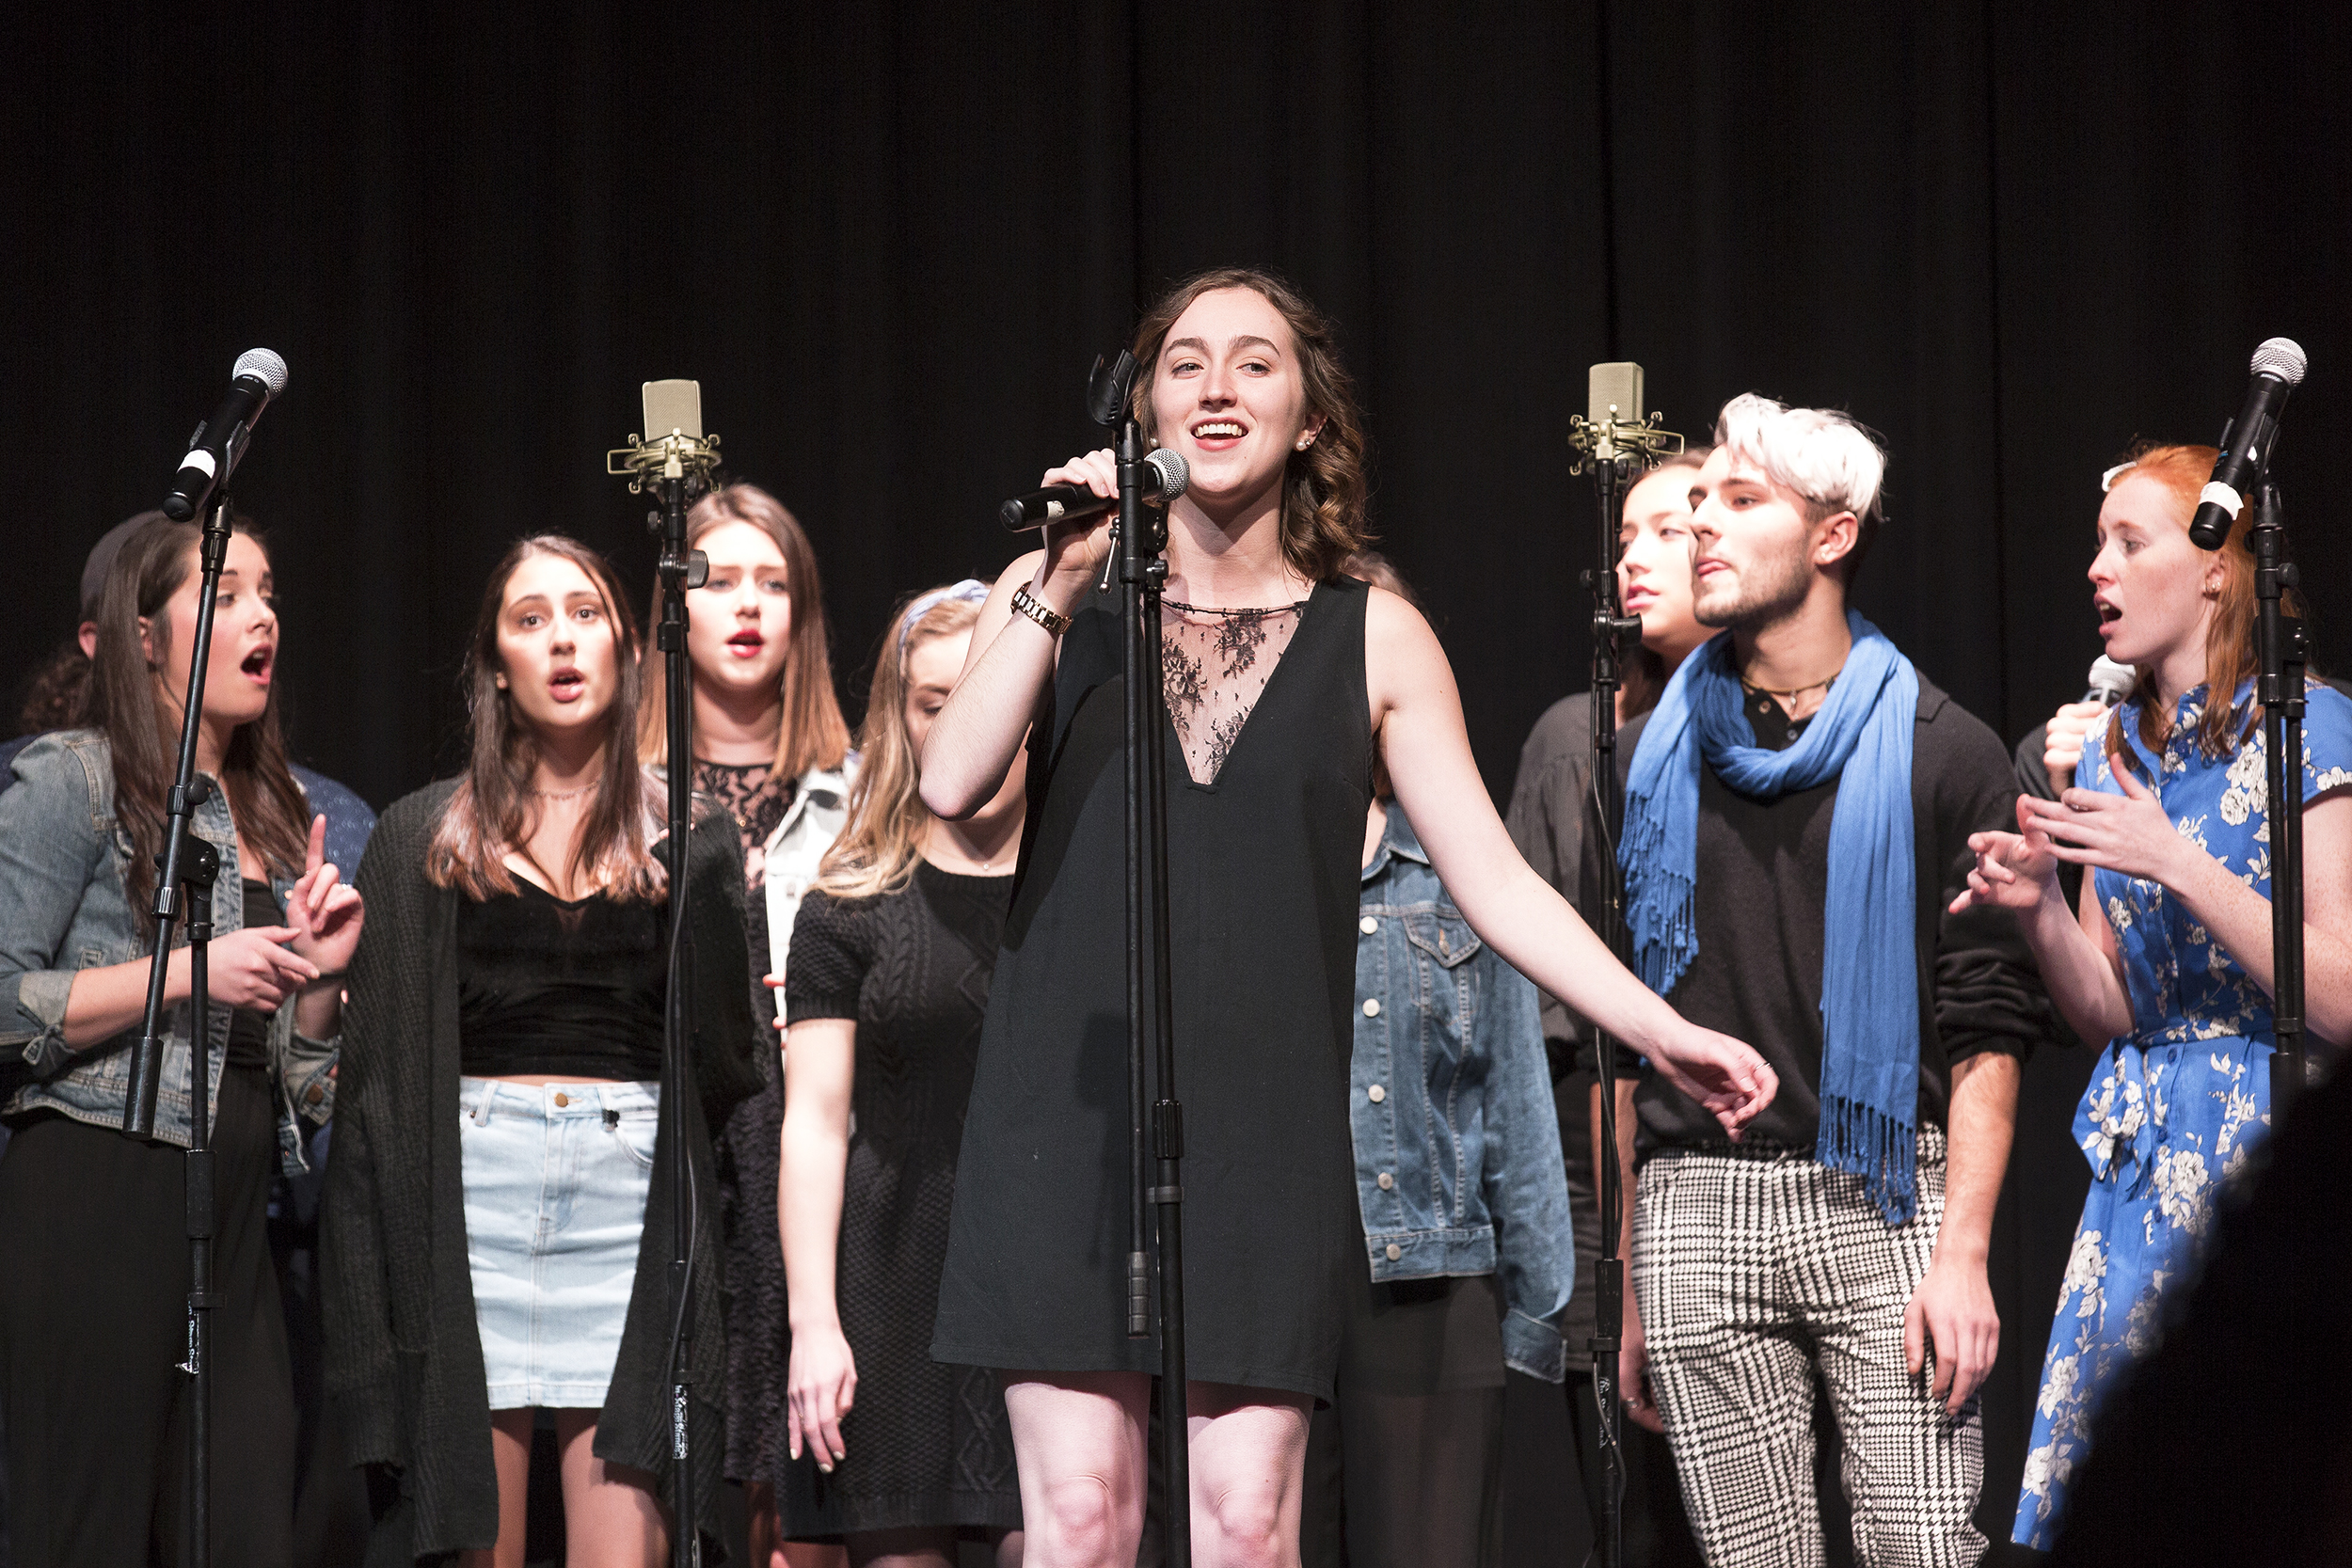 Communication major senior Gabrielle Owen (pictured above) sings with Between the Lines at the fall invitational hosted by BTL and Emmelodics on Nov. 9. Owen maintains a passion for music as president of BTL (Annalee Bainnson/staff photographer).